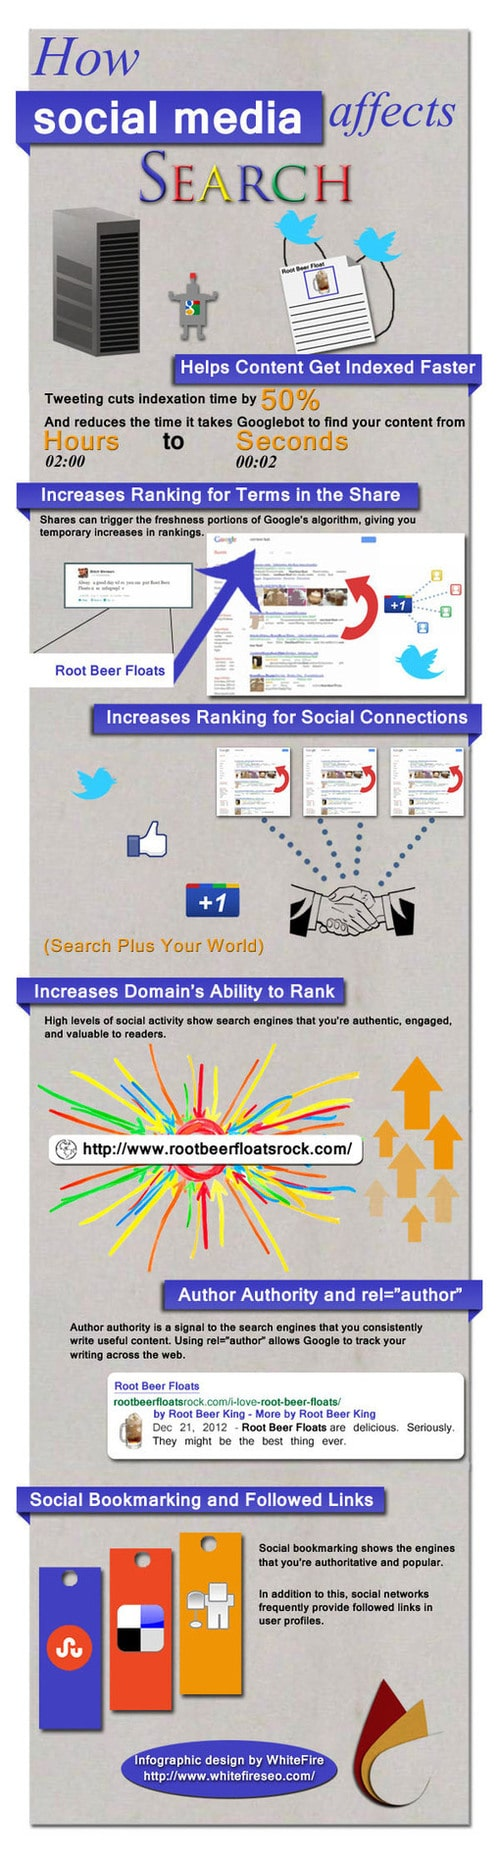 How Your Social Media Efforts Affect Search Ranking [Infographic]